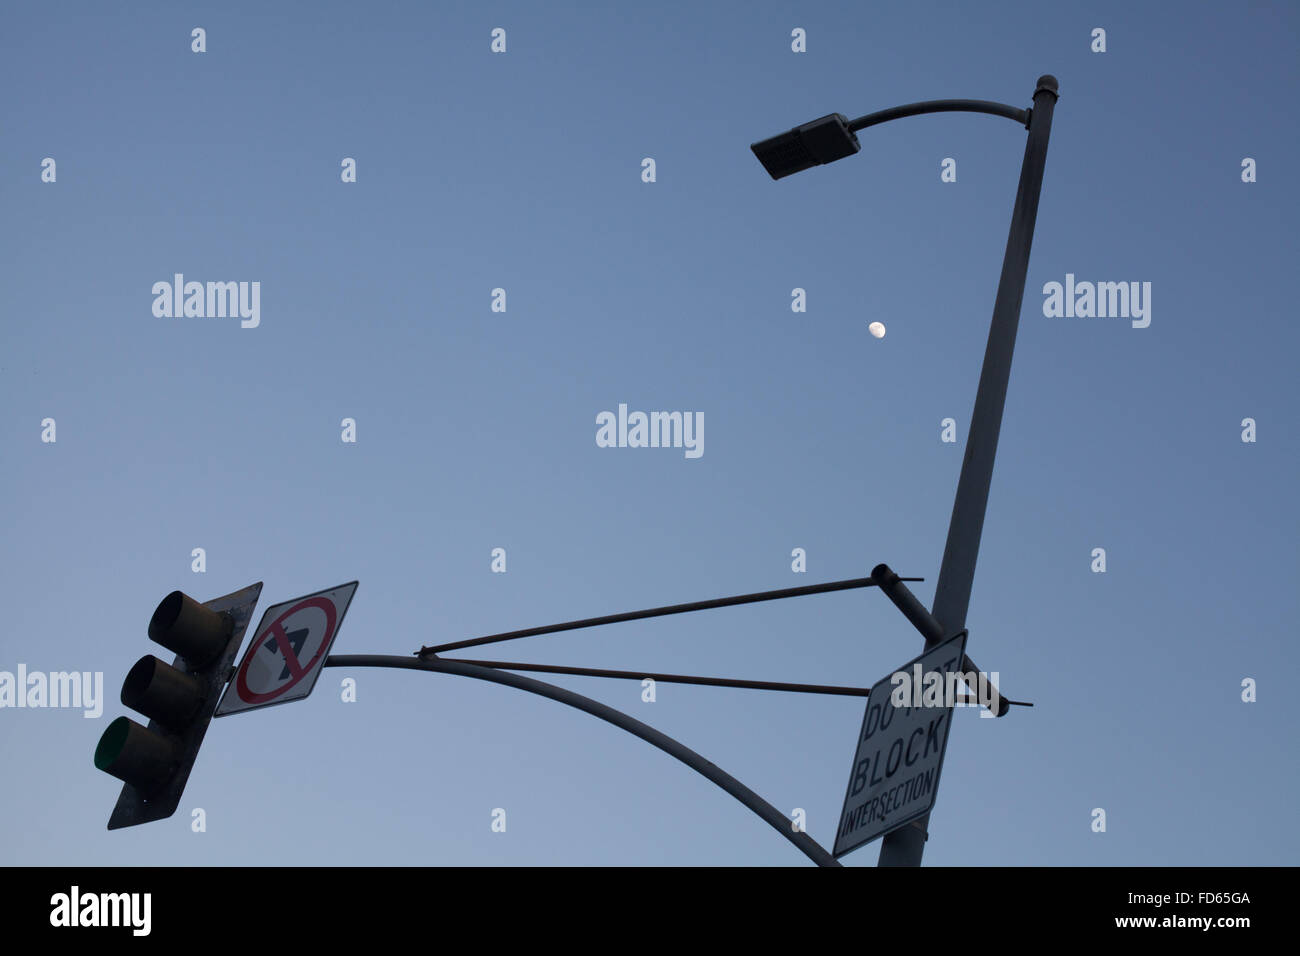 Low Angle View Of Road Sign With Street Light Against Clear Sky At Dusk Stock Photo